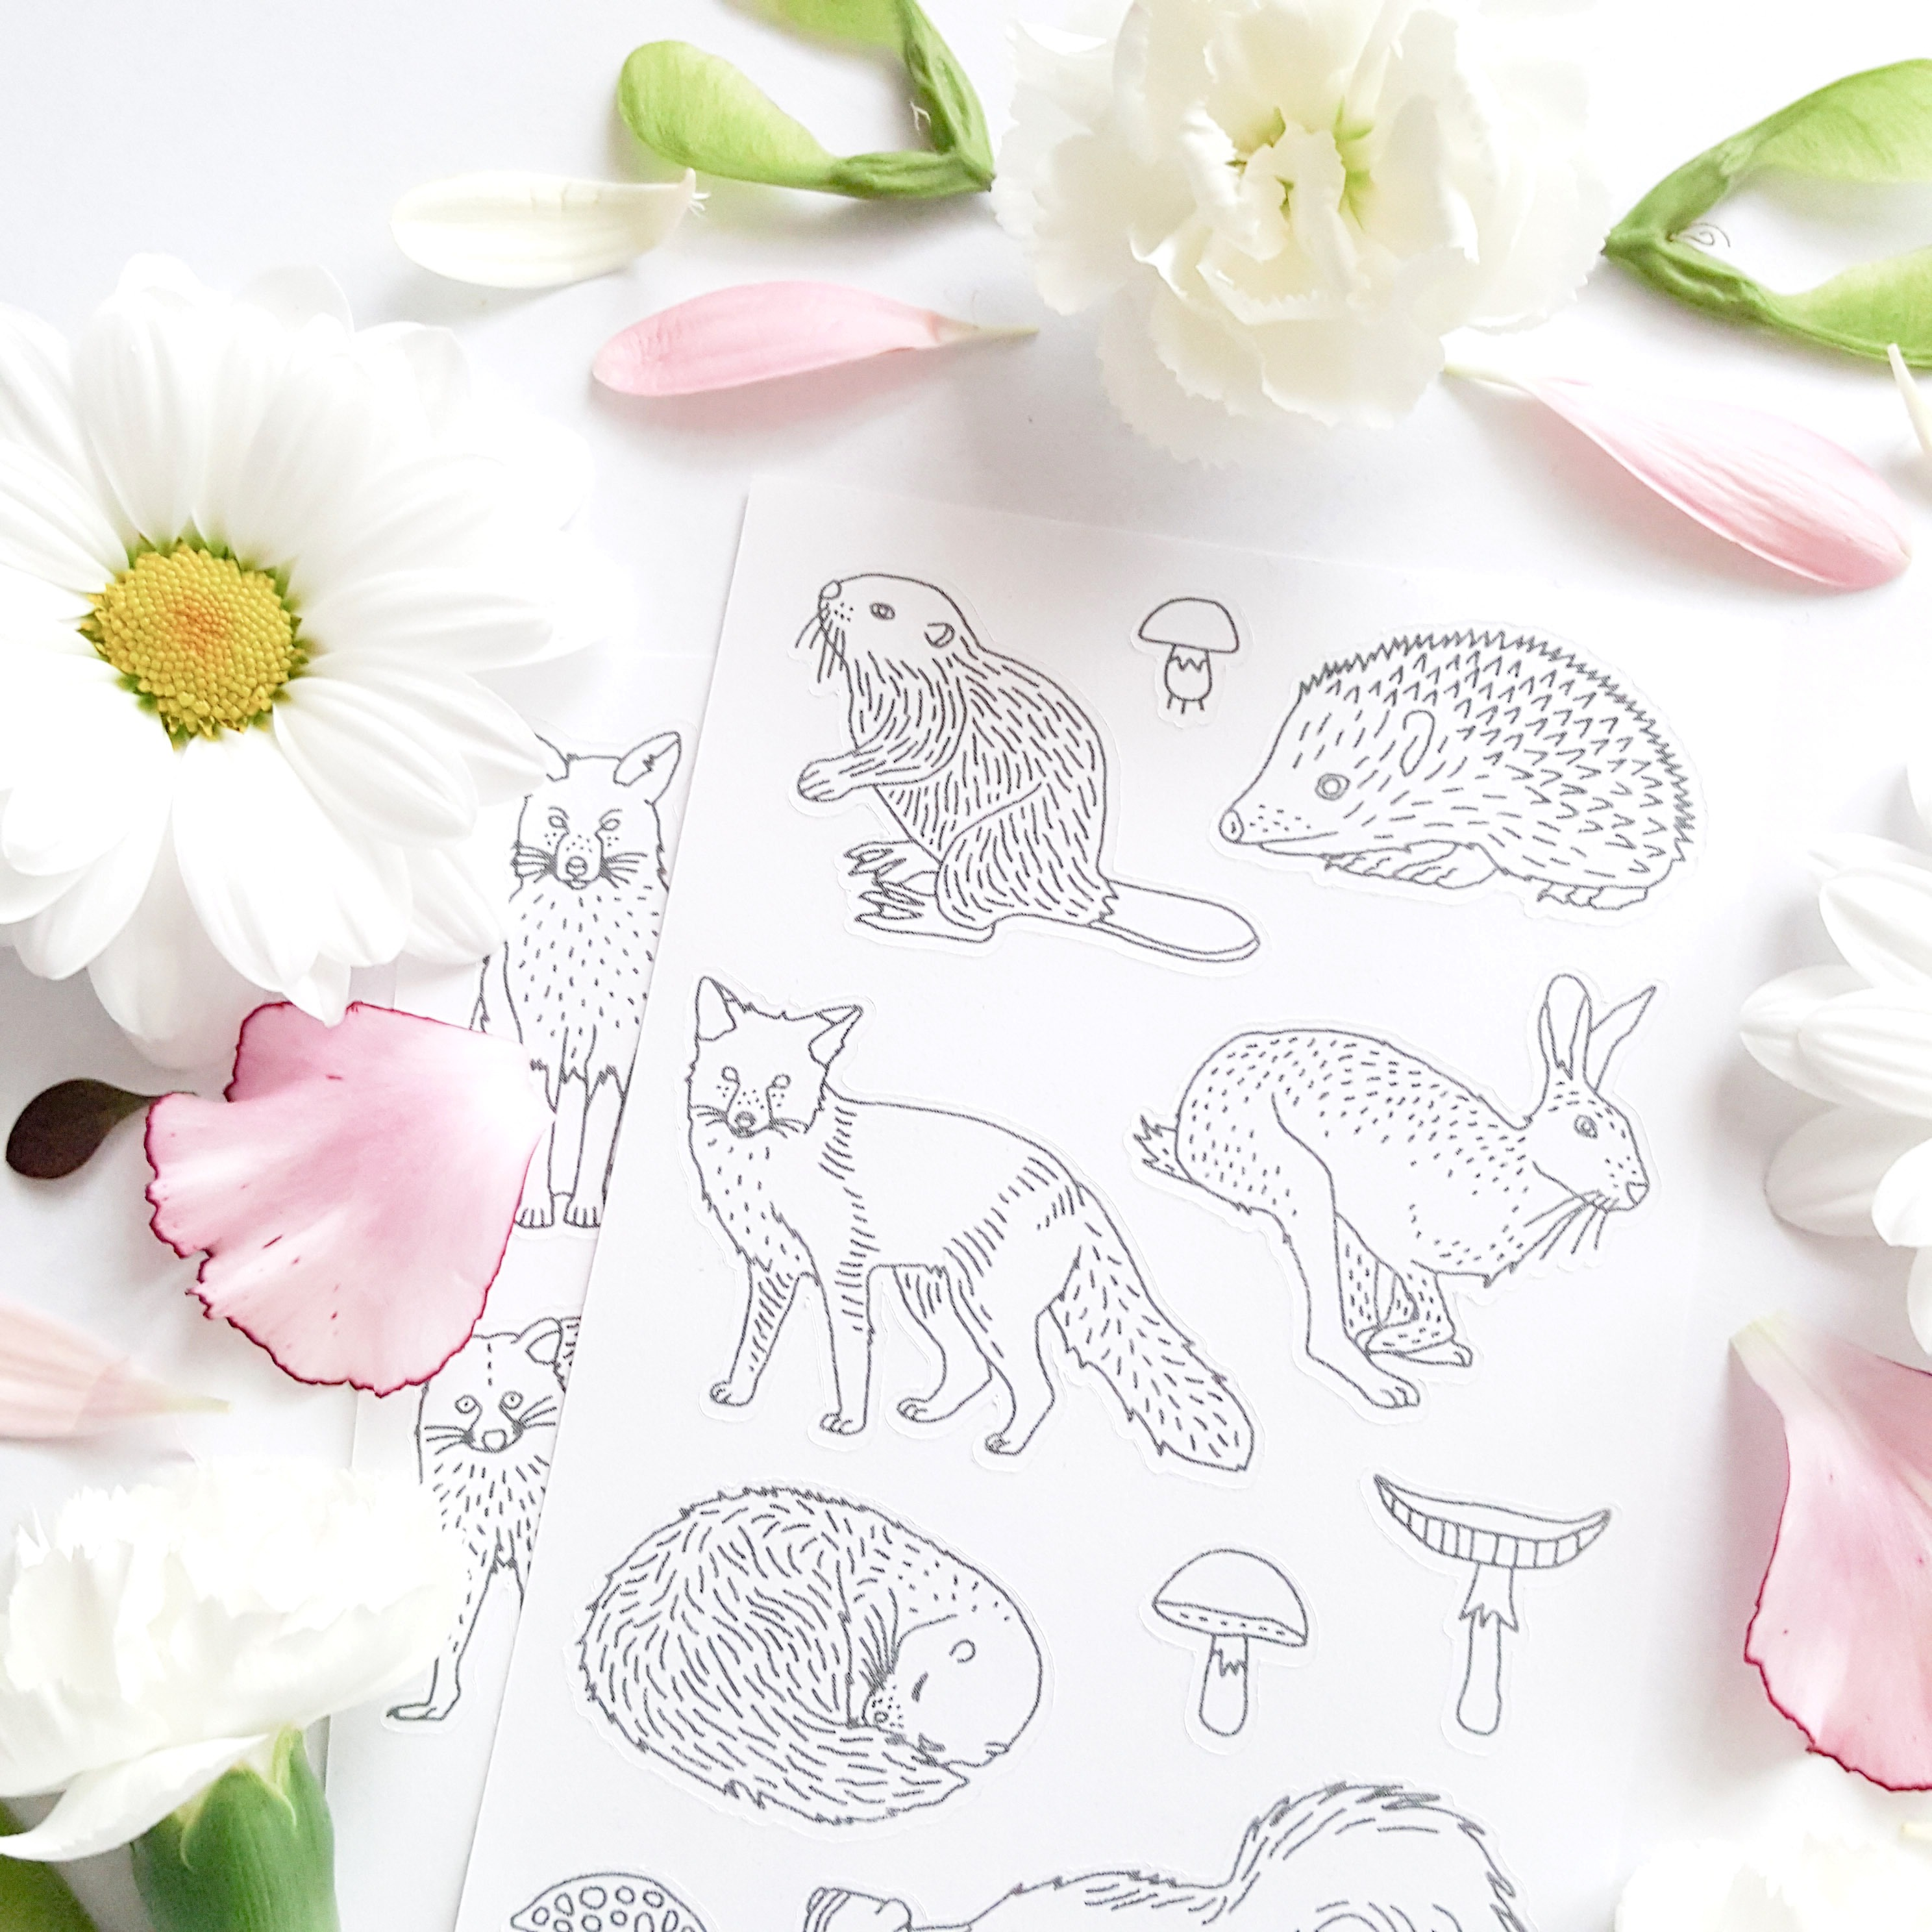 party favors forest forest animals animals decals animal coloring adult coloring page woodland animal animal stickers stickers to color in adult coloring coloring planner planner decals forest coloring woodland party favor